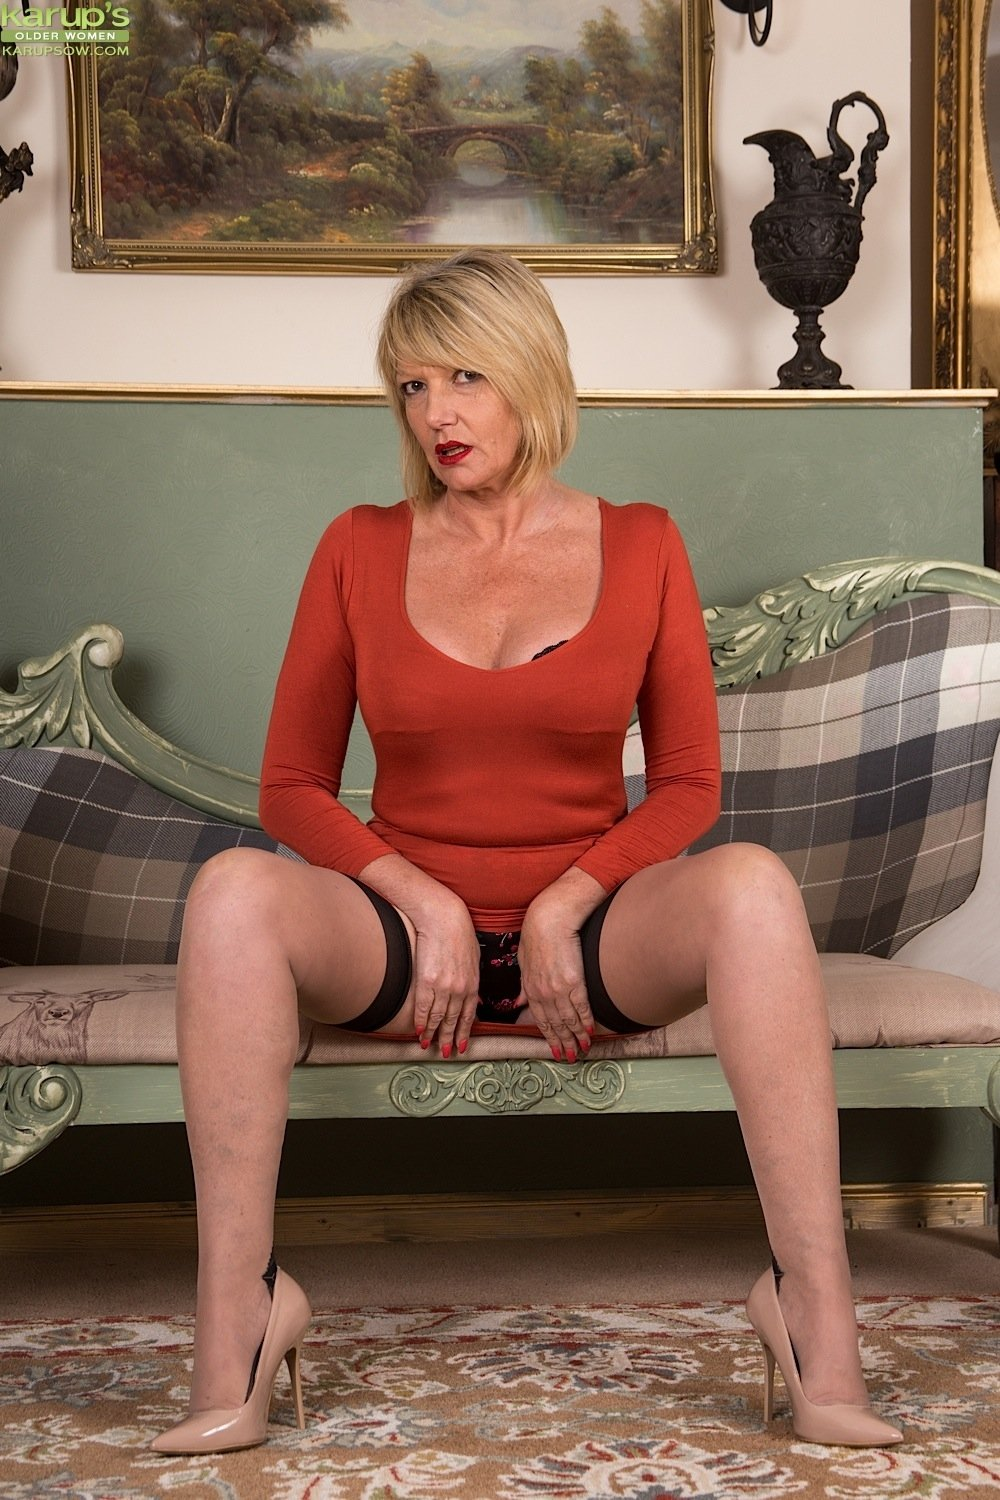 Legs fetish7 Family weep sex video